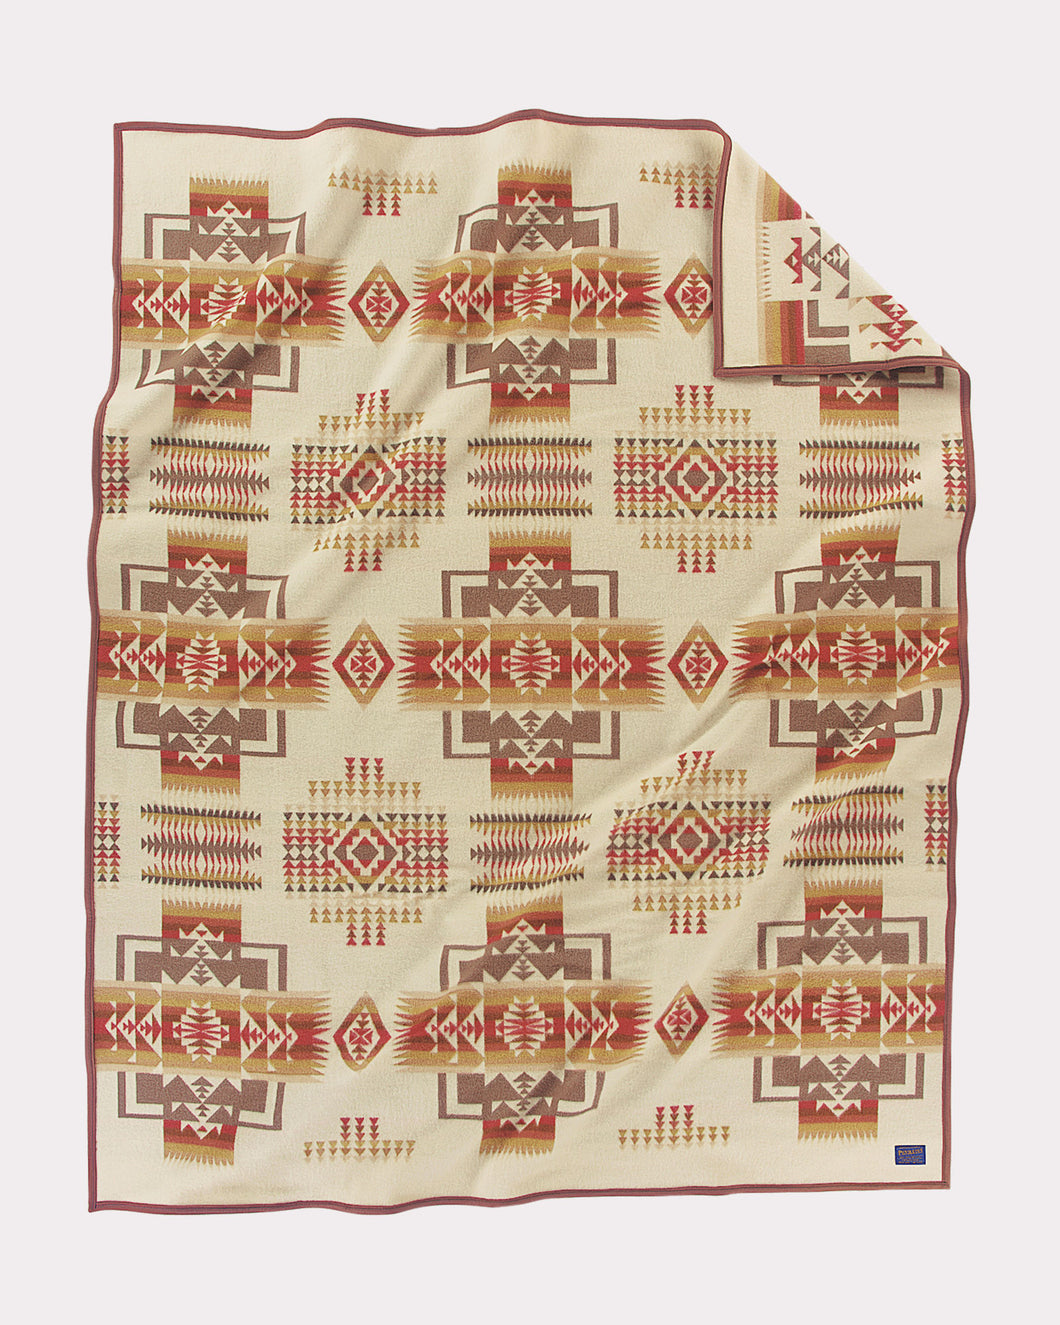 Pendleton Woolen mills chief joesph blanket cream wheat bravery arrows integrity Nez Perce Inidans wool American made western gift blanket throw robe